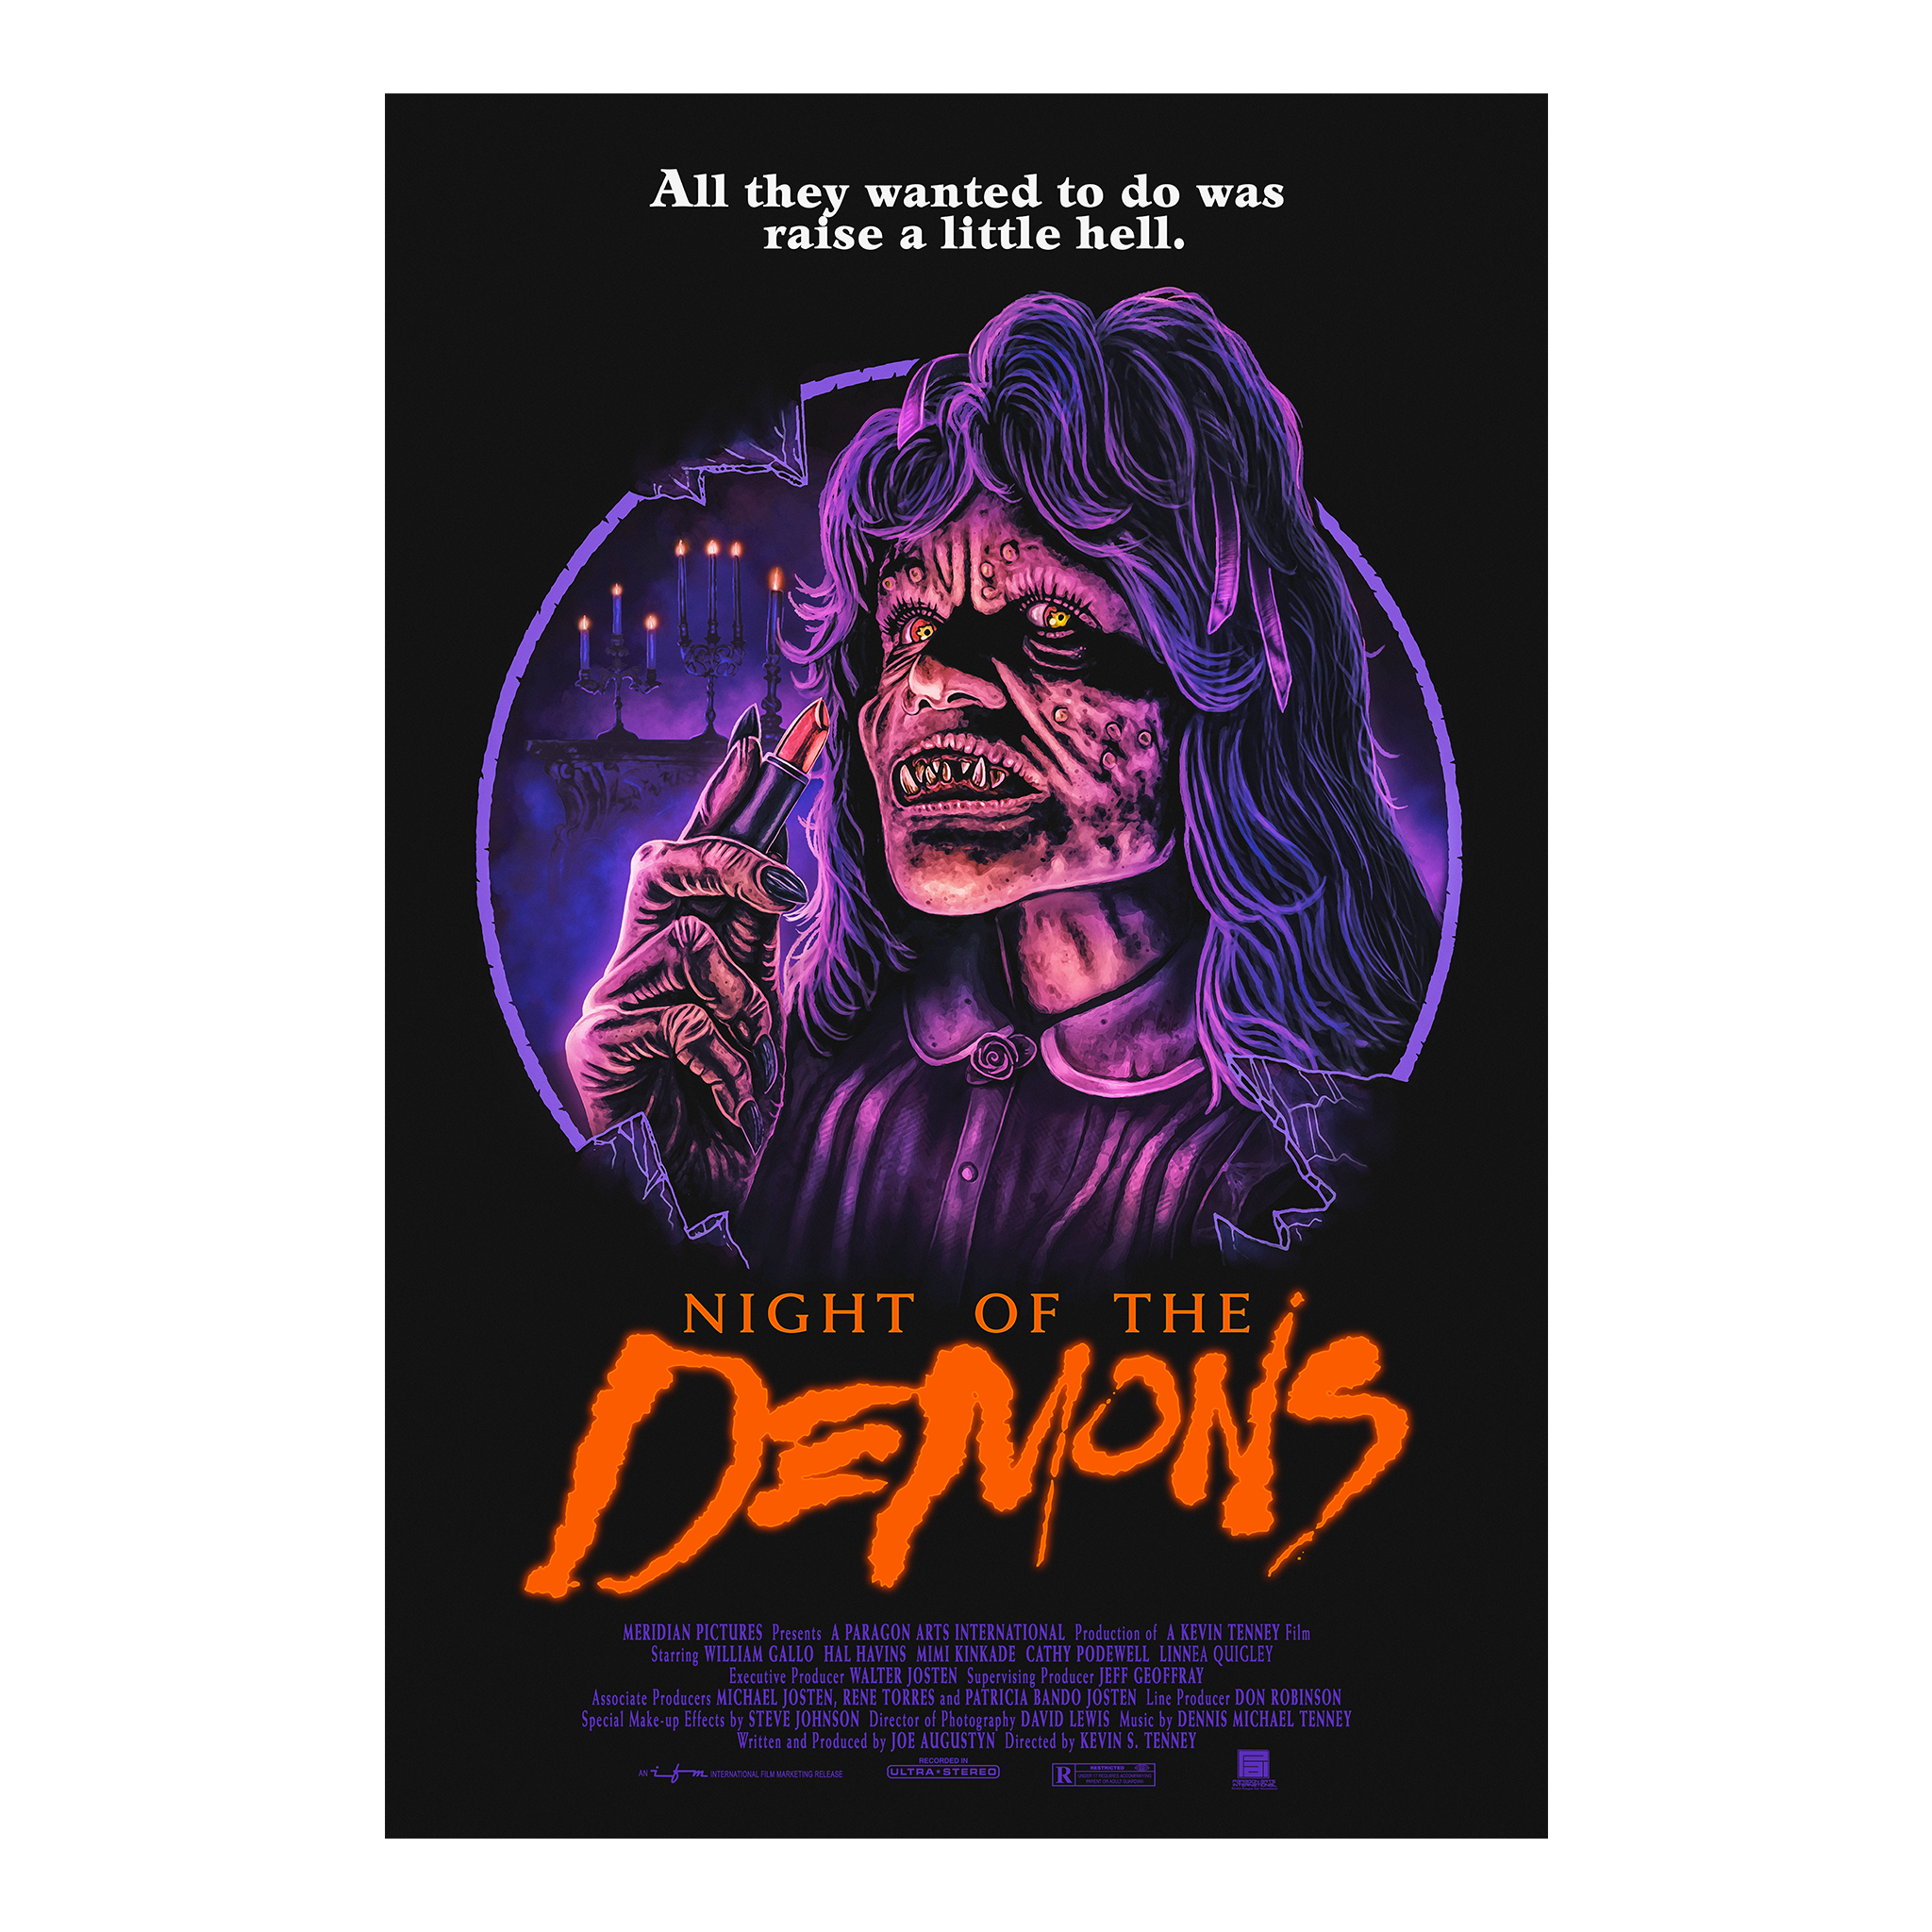 Night of the Demons: Suzanne Poster (24x36)